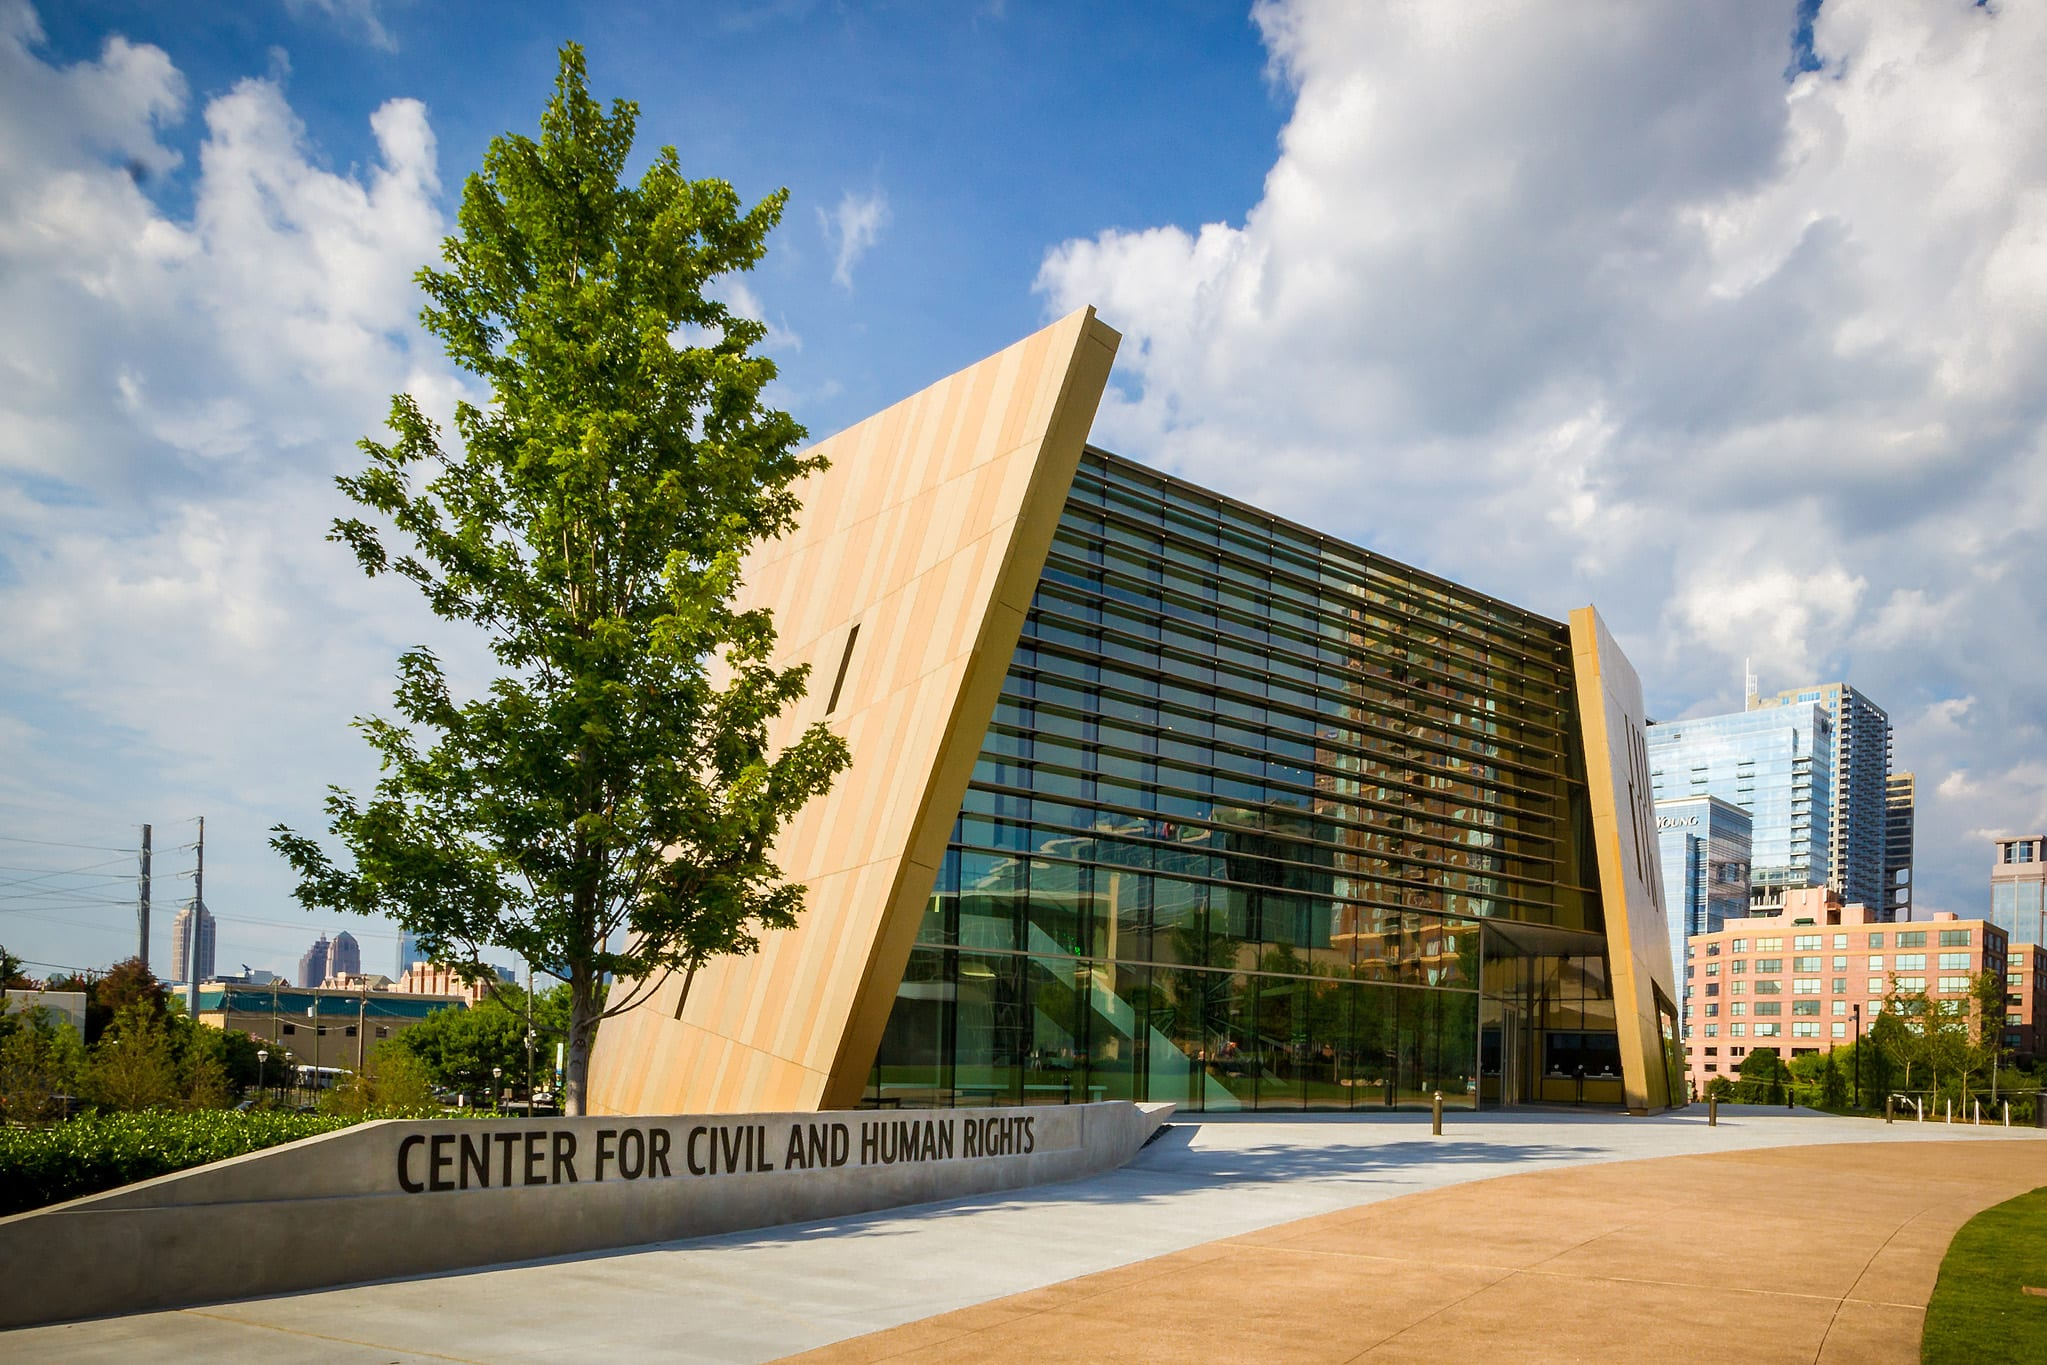 The National Center for Civil and Human Rights is one of the top places to visit in Atlanta